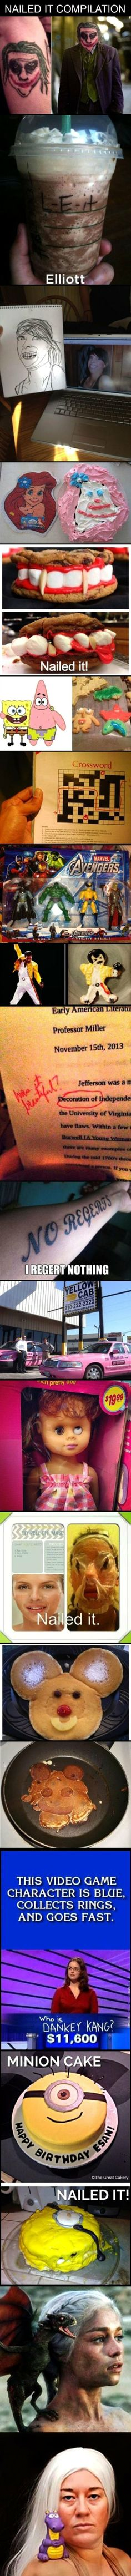 Nailed It Compilation  - http://funny-pictures-blog.com/2014/01/30/funny-pics-nailed-it-compilation-meme/